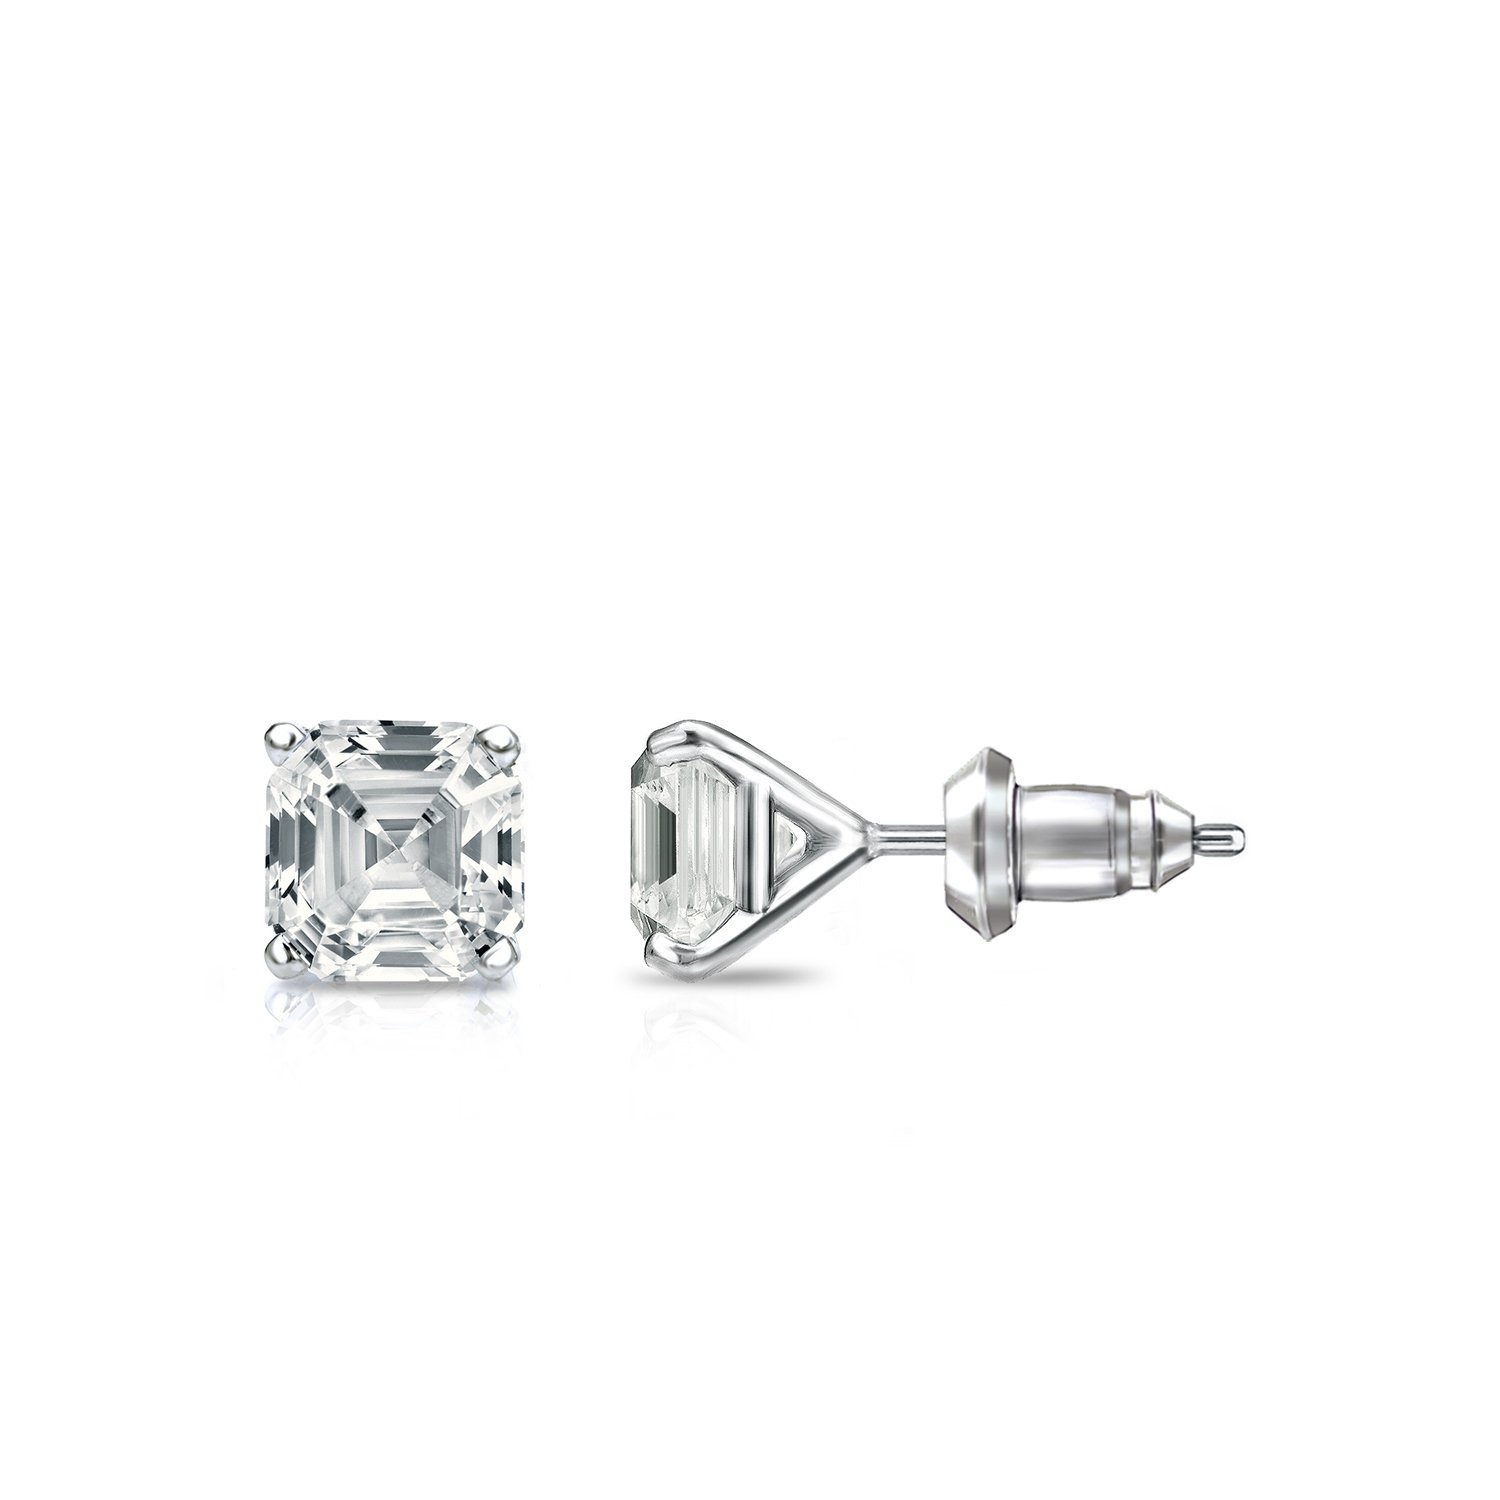 7ce9a989f Amazon.com: 14k Rose Gold 4-Prong Martini Asscher Diamond Men Stud Earrings  (1/2ct, White, SI1-SI2): Jewelry